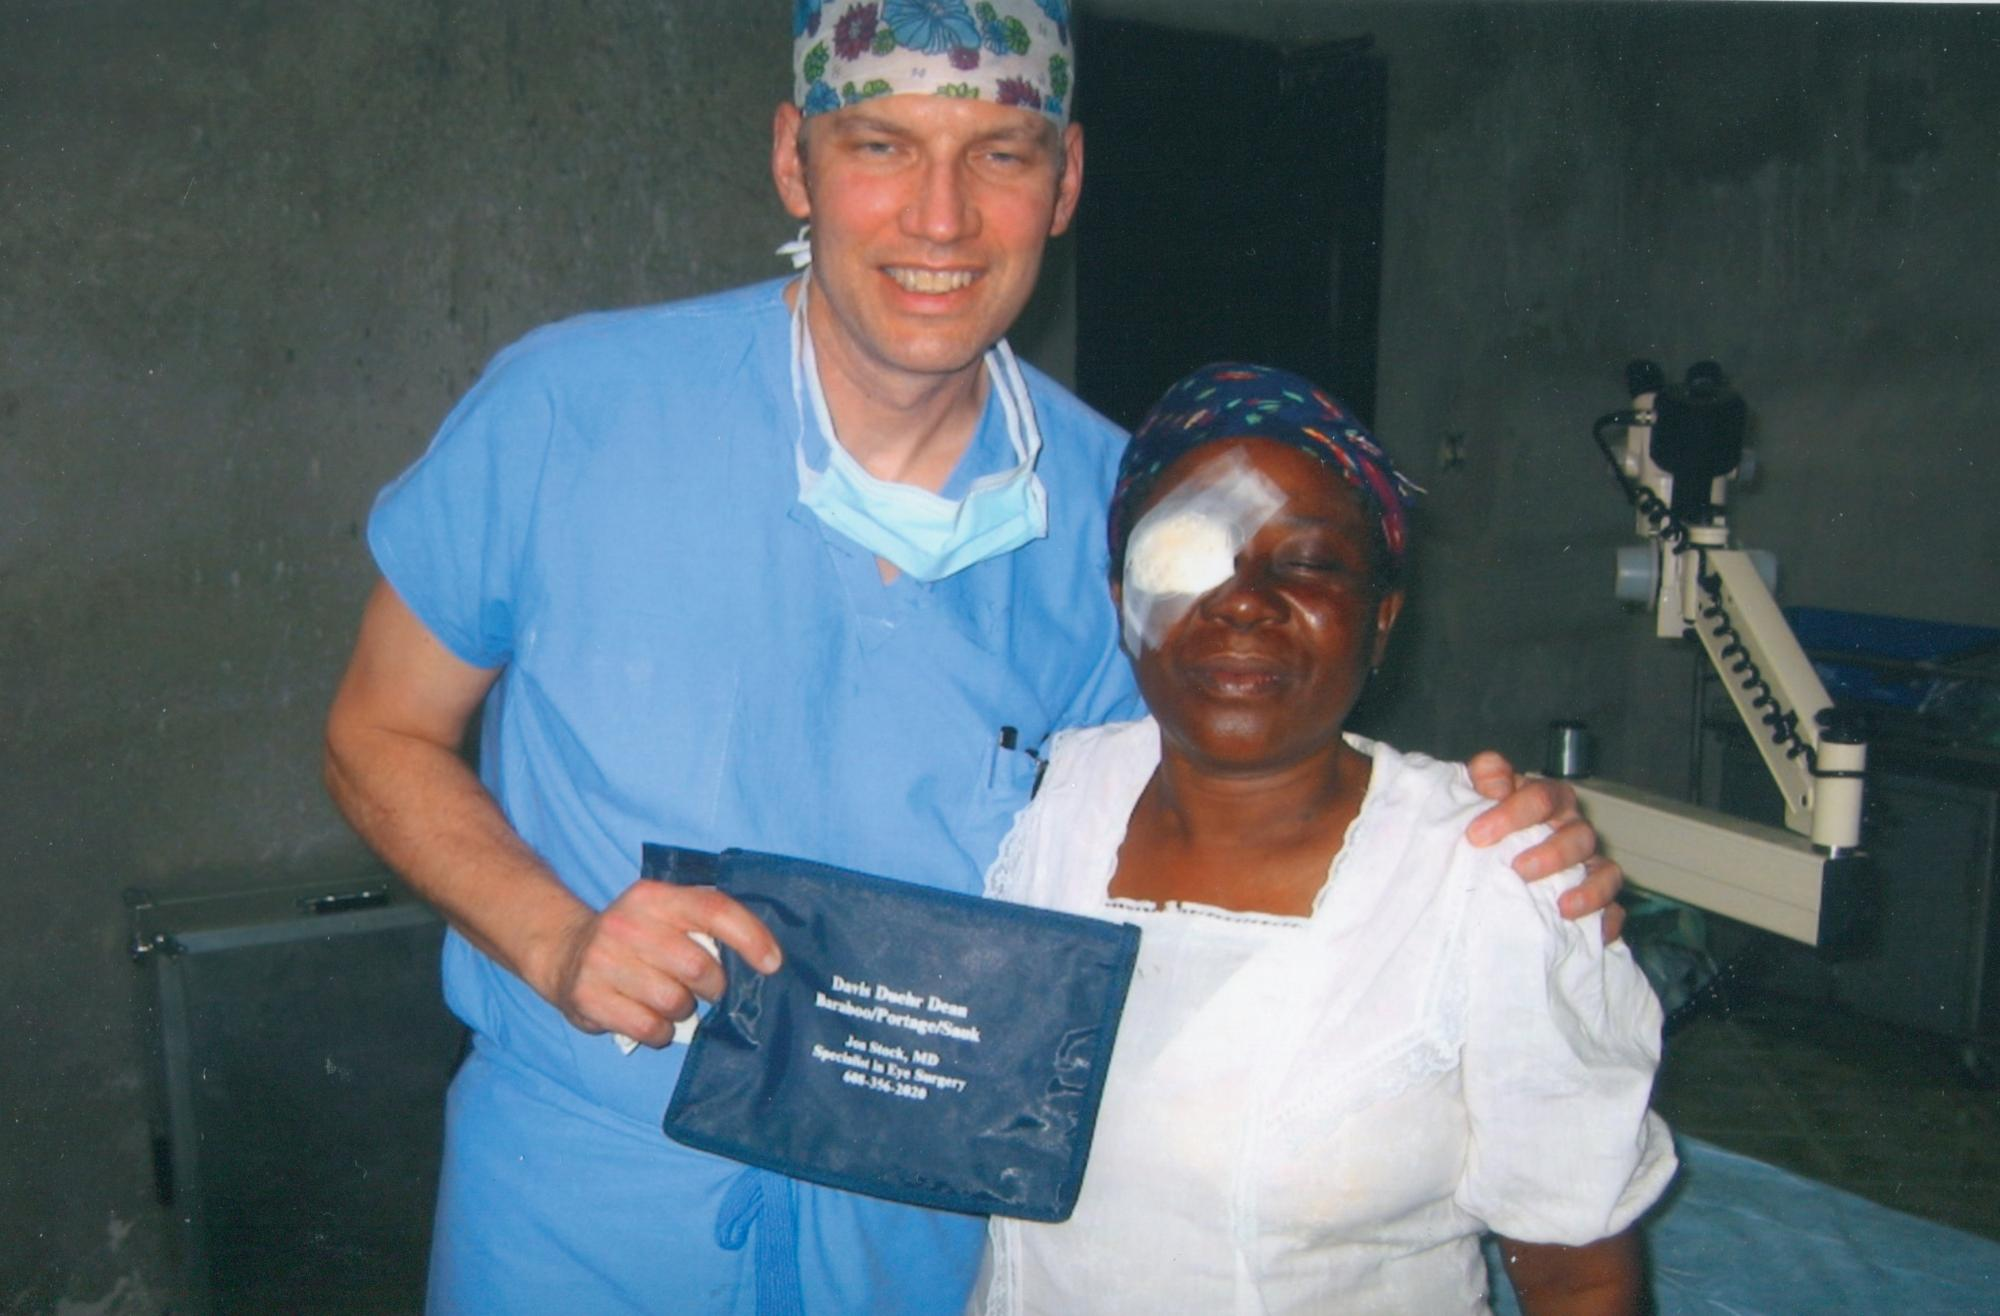 Dr_Jon_Stock____with_female_eye_patient_post_op_circa_feb_2003_image50.jpg